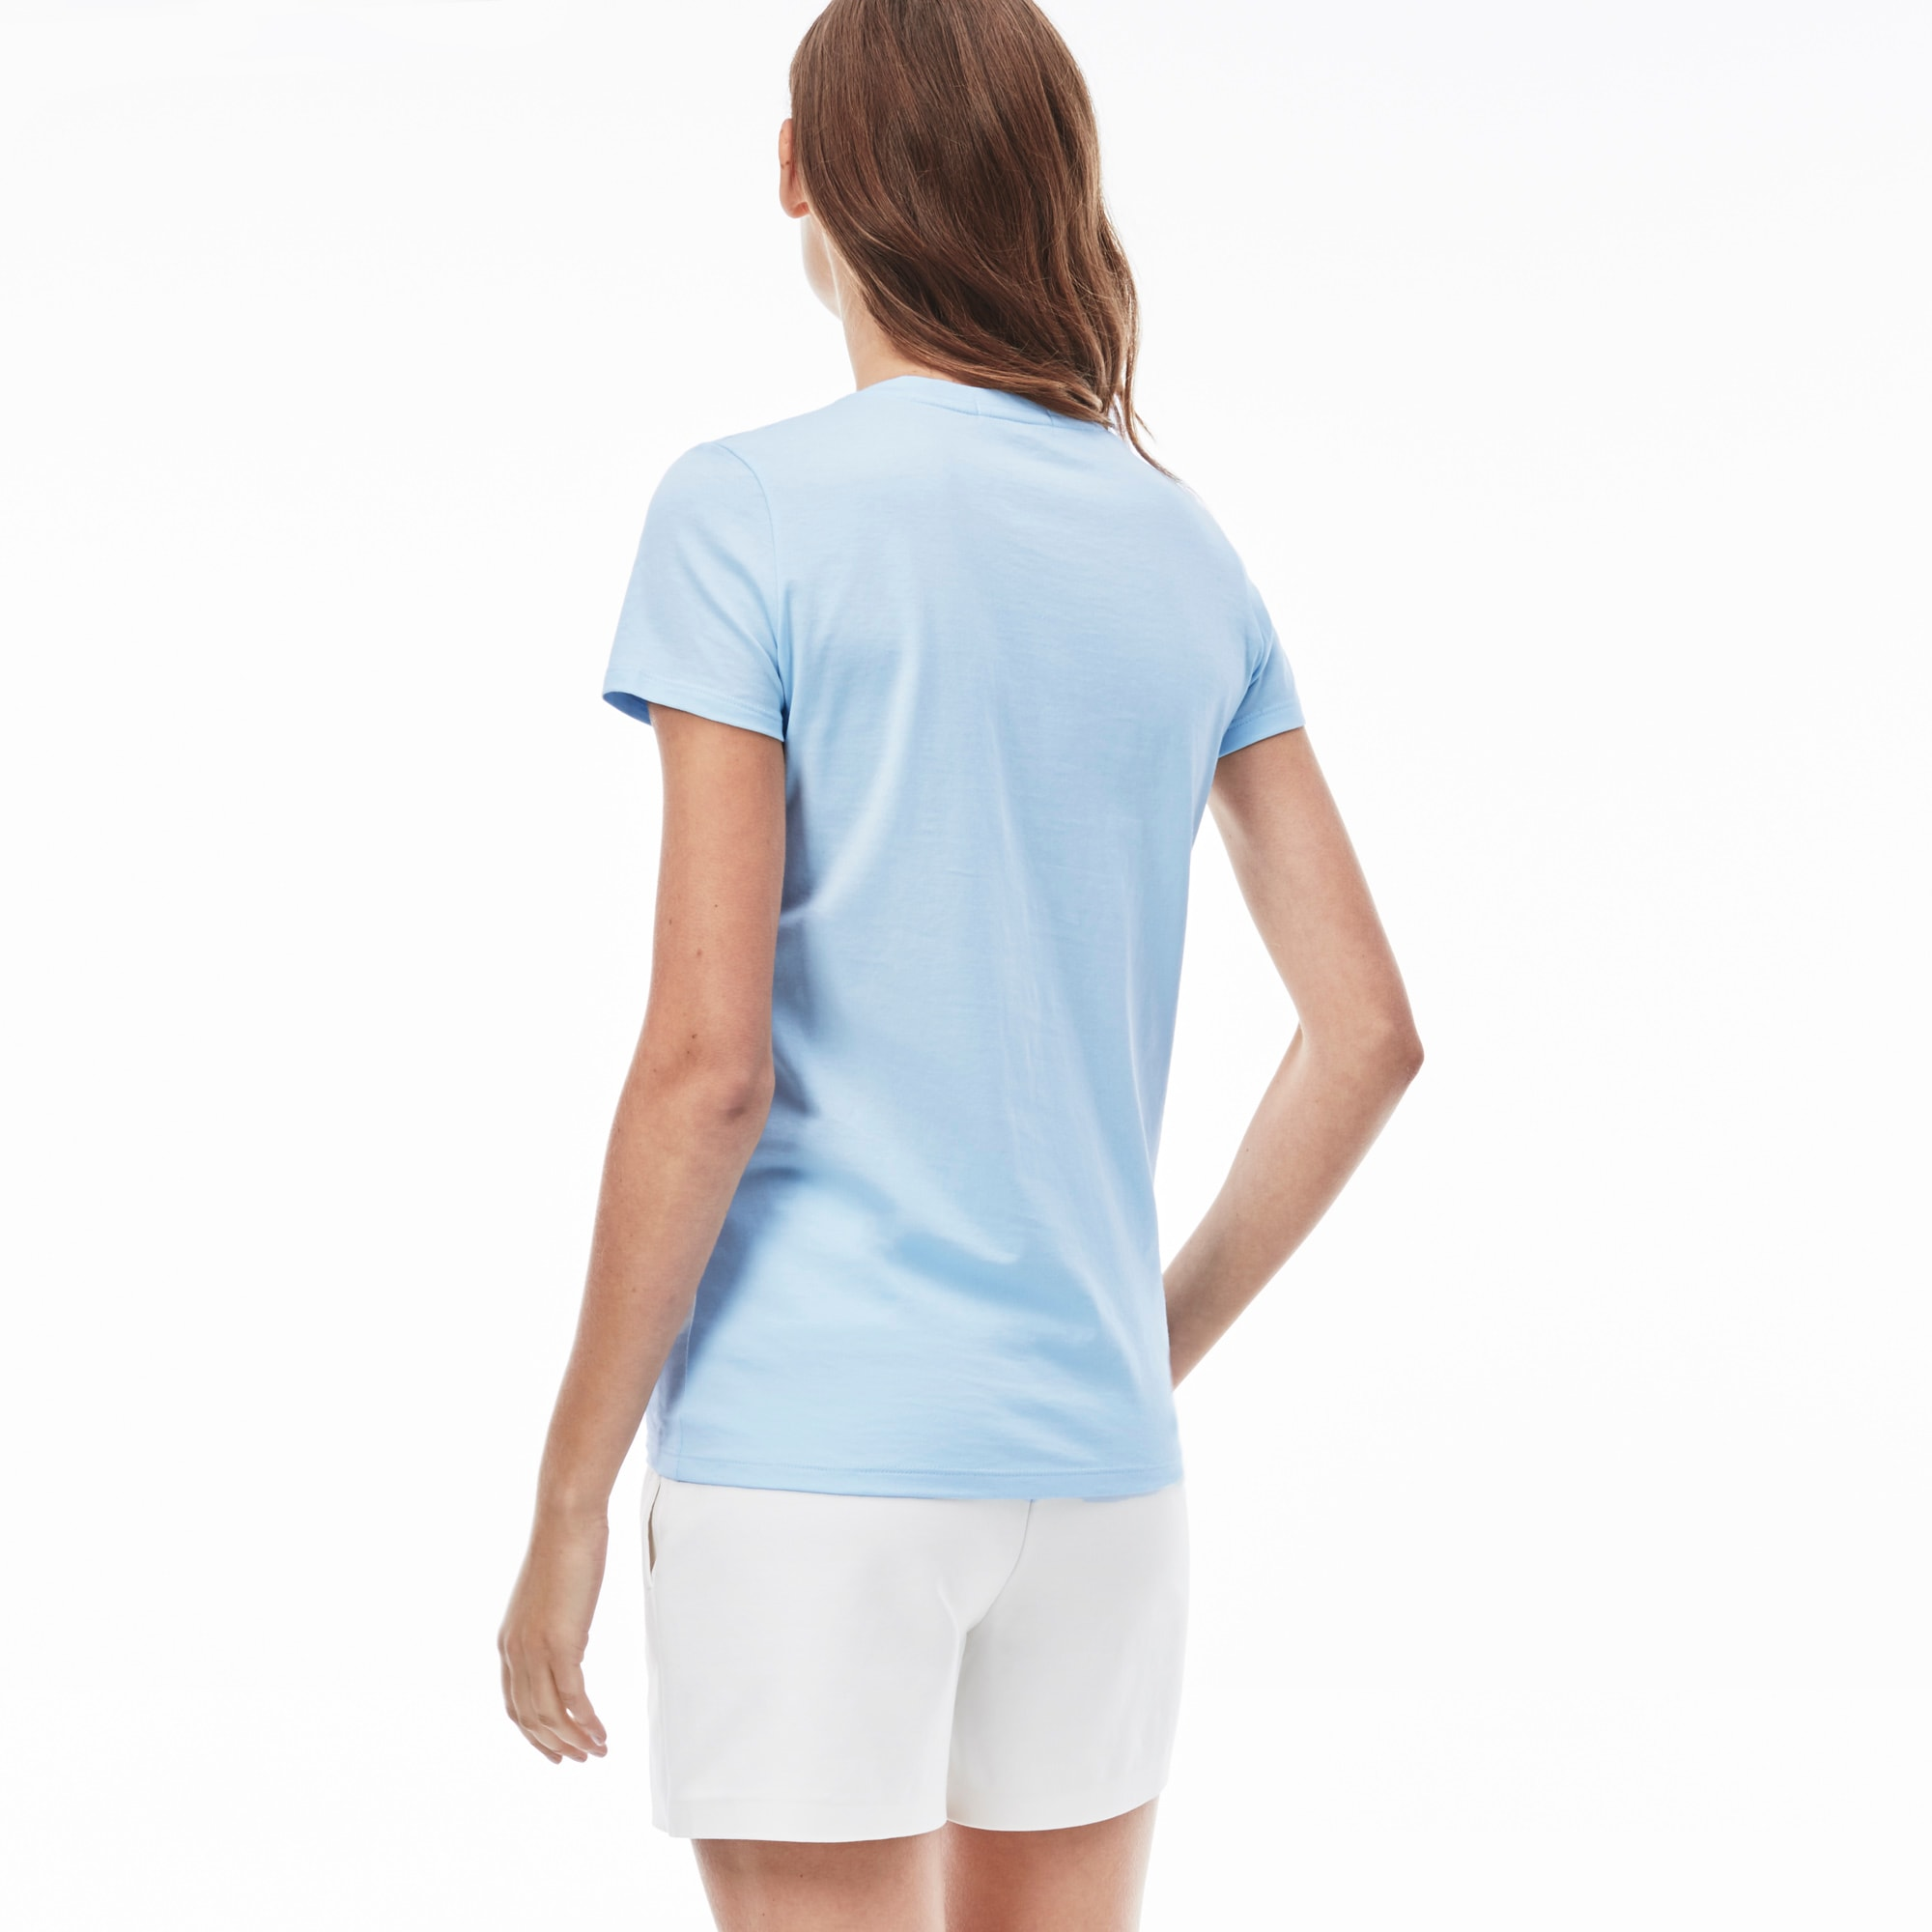 Women's V-neck t-shirt in soft jersey